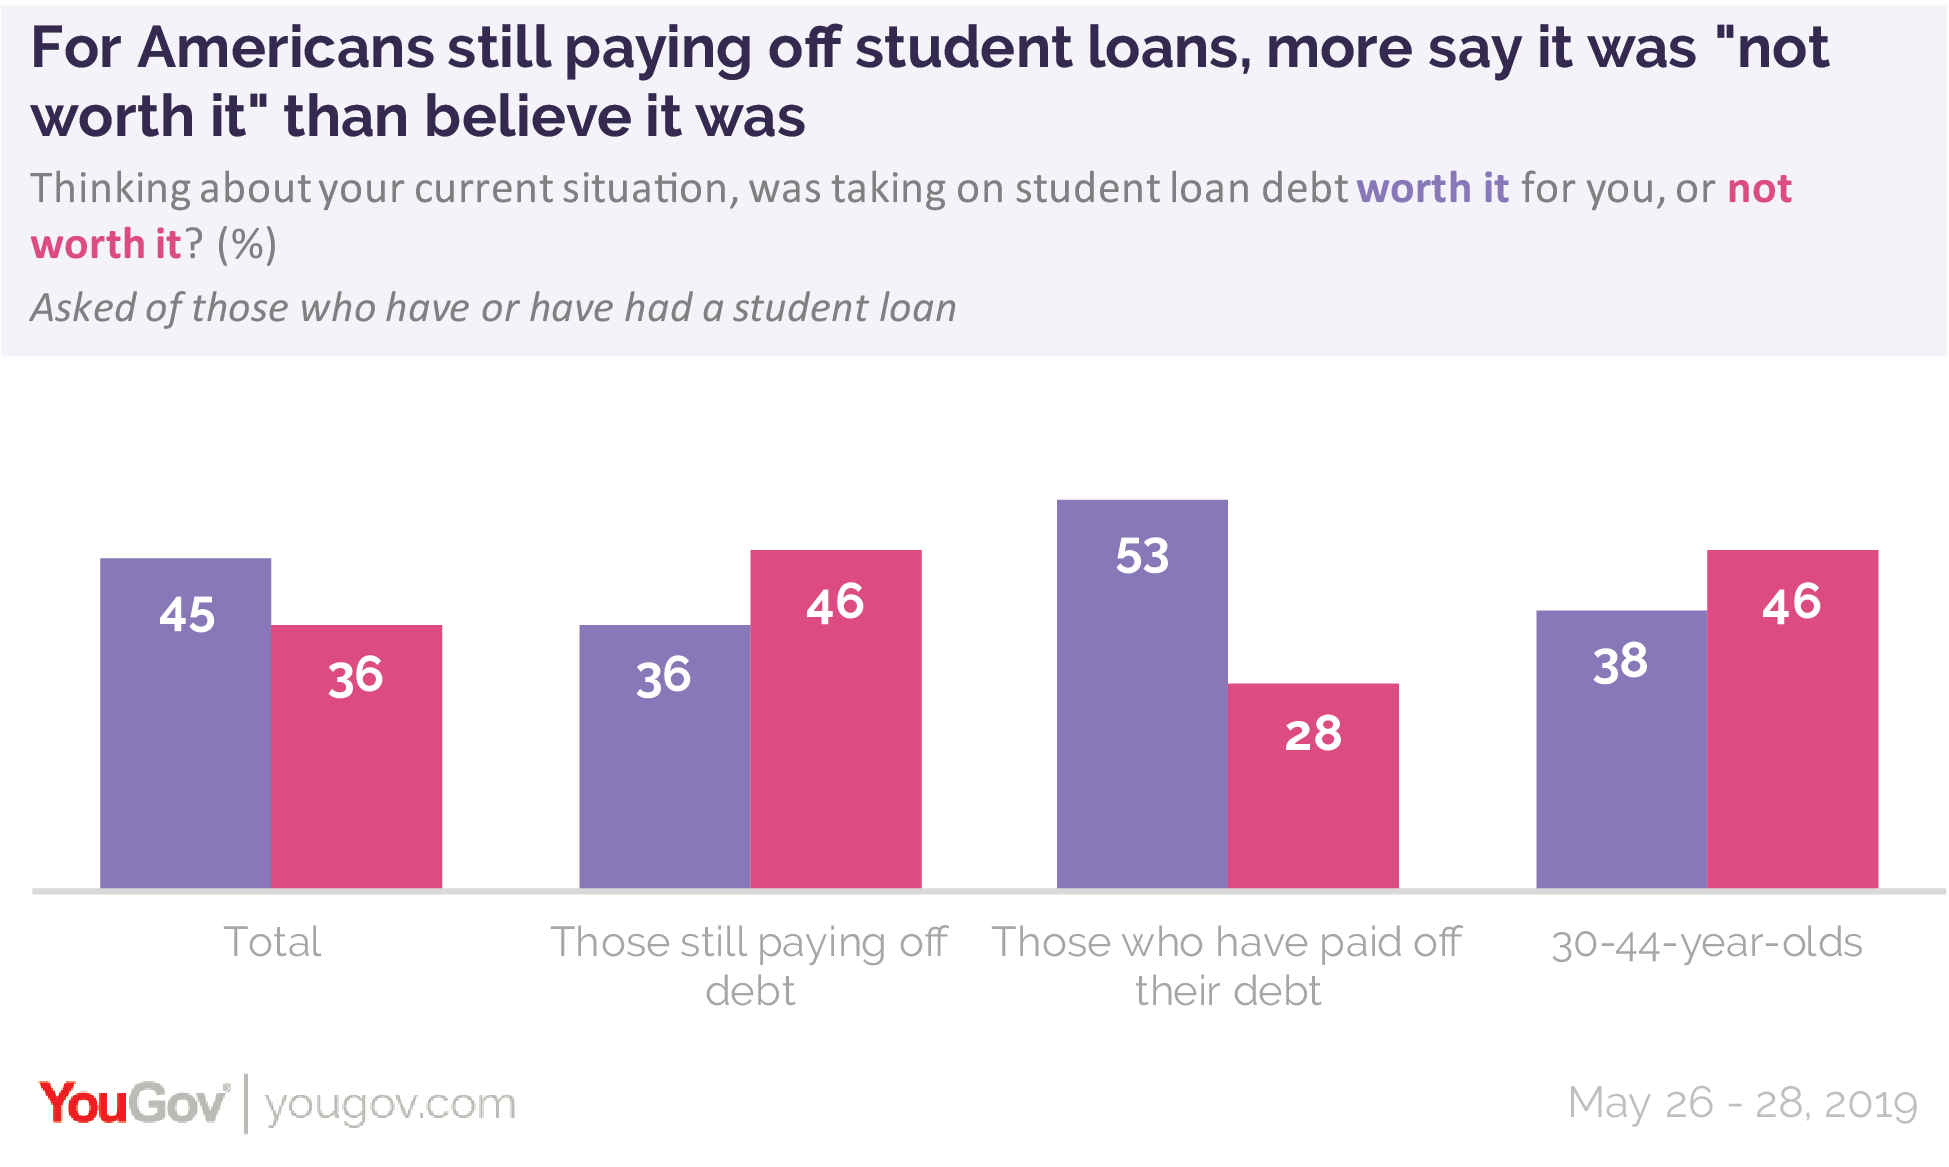 For Americans still paying off student loans, more say it was not worth it than believe it was